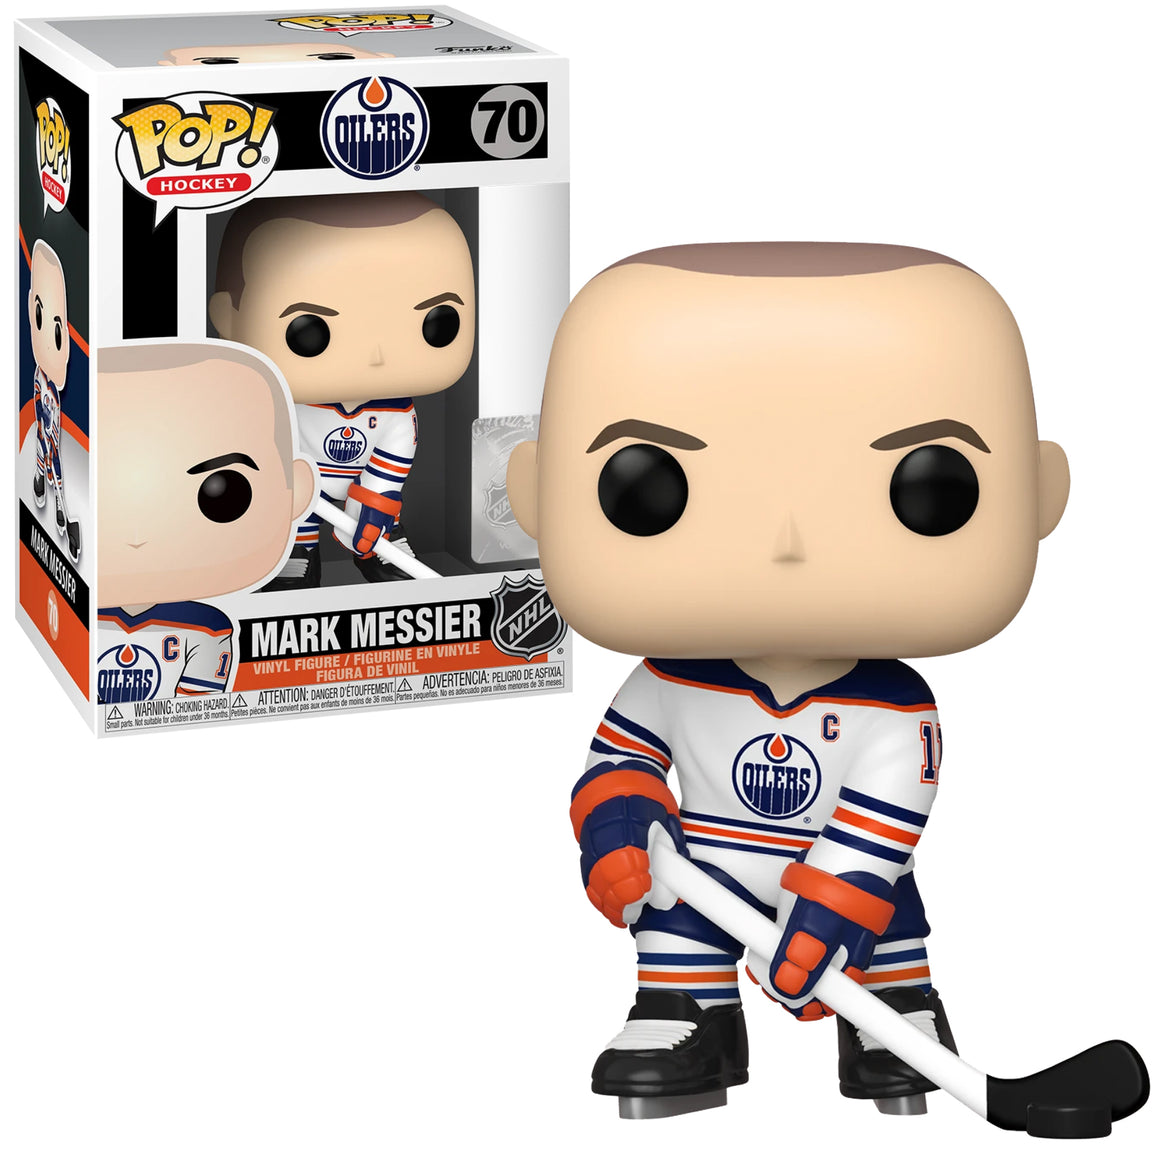 Funko Pop Vinyl Figurine Mark Messier #70 - NHL Edmonton Oilers